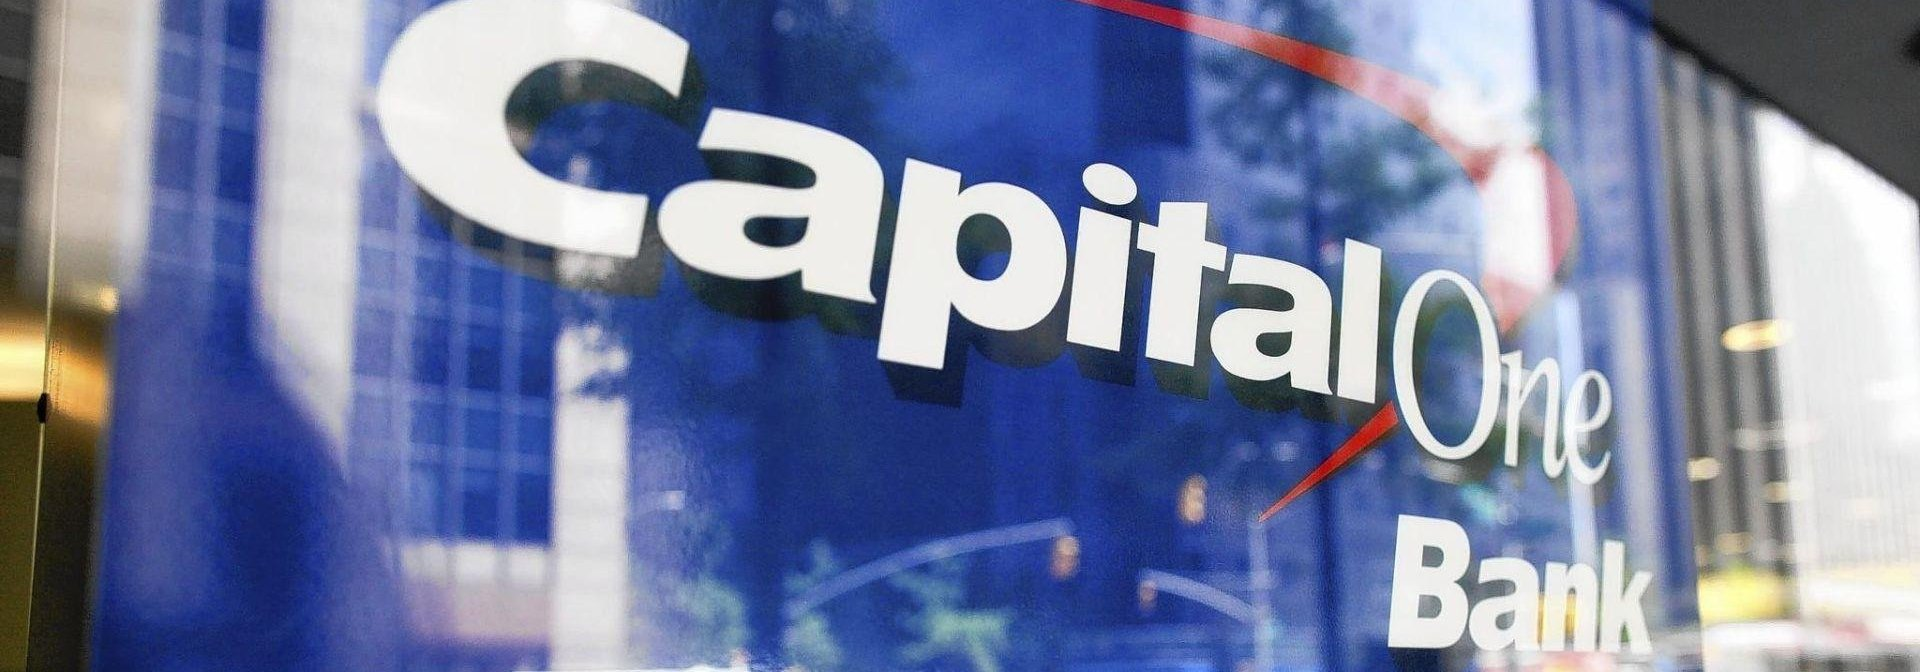 Capital One Tuition Assistance